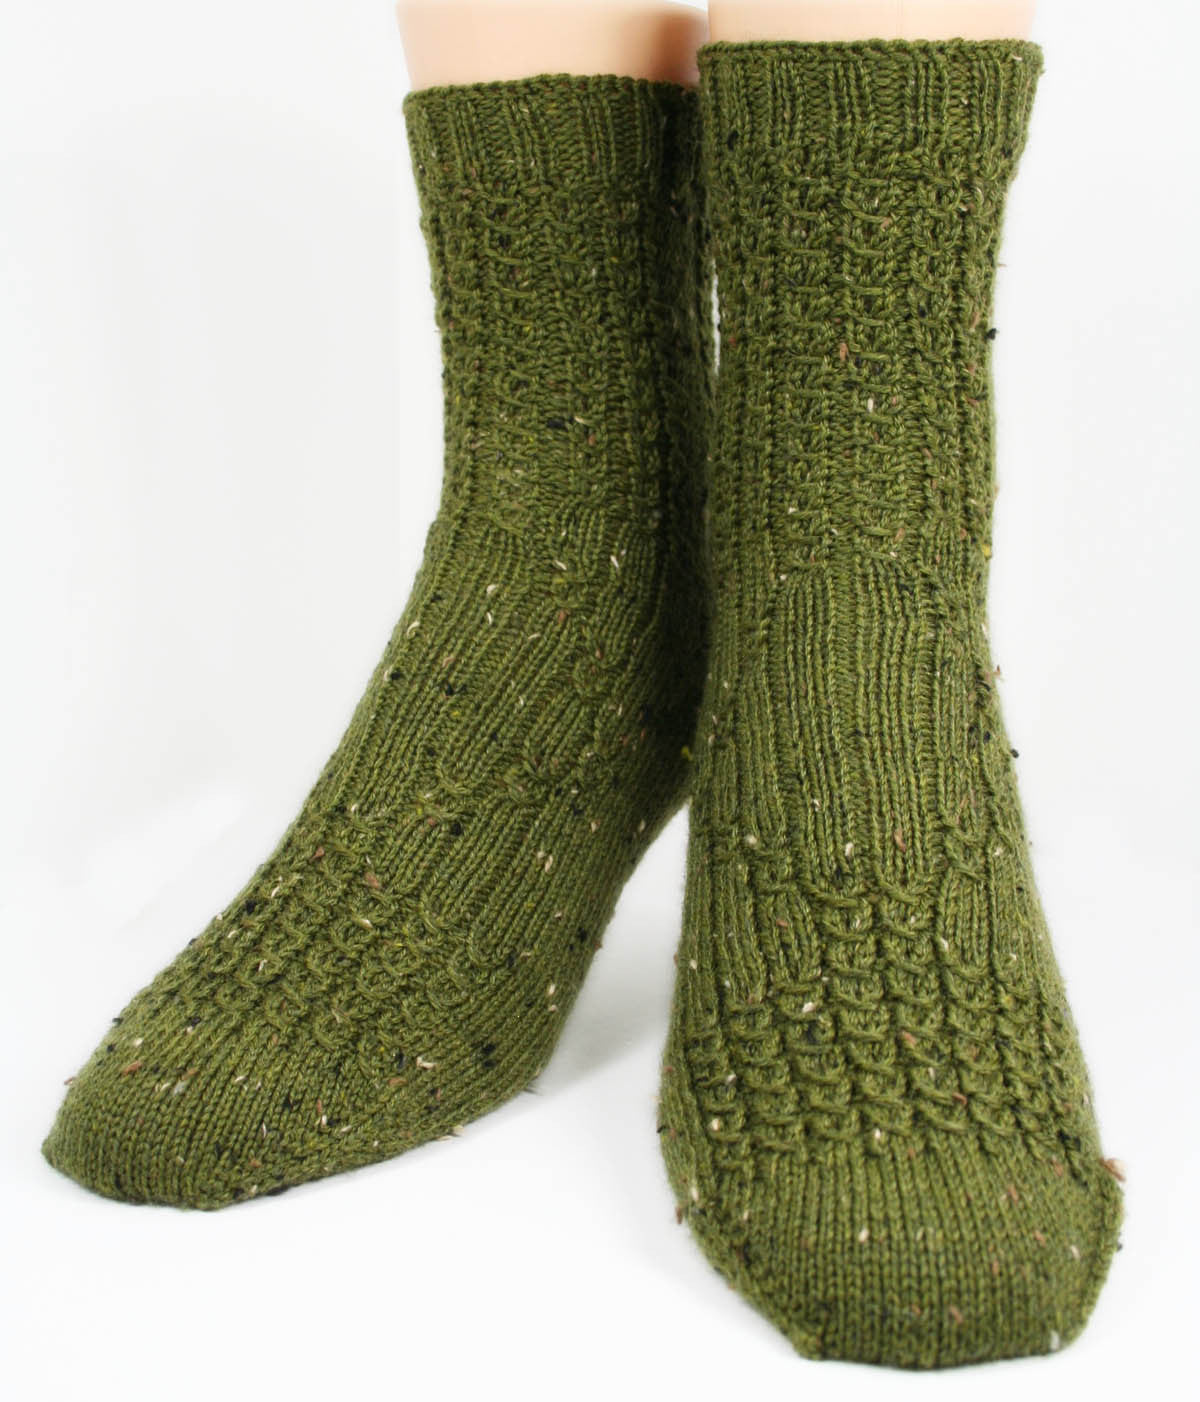 KNITTING PATTERN for Mock Cable Diamond Socks - Charted Sock pattern - Digital download